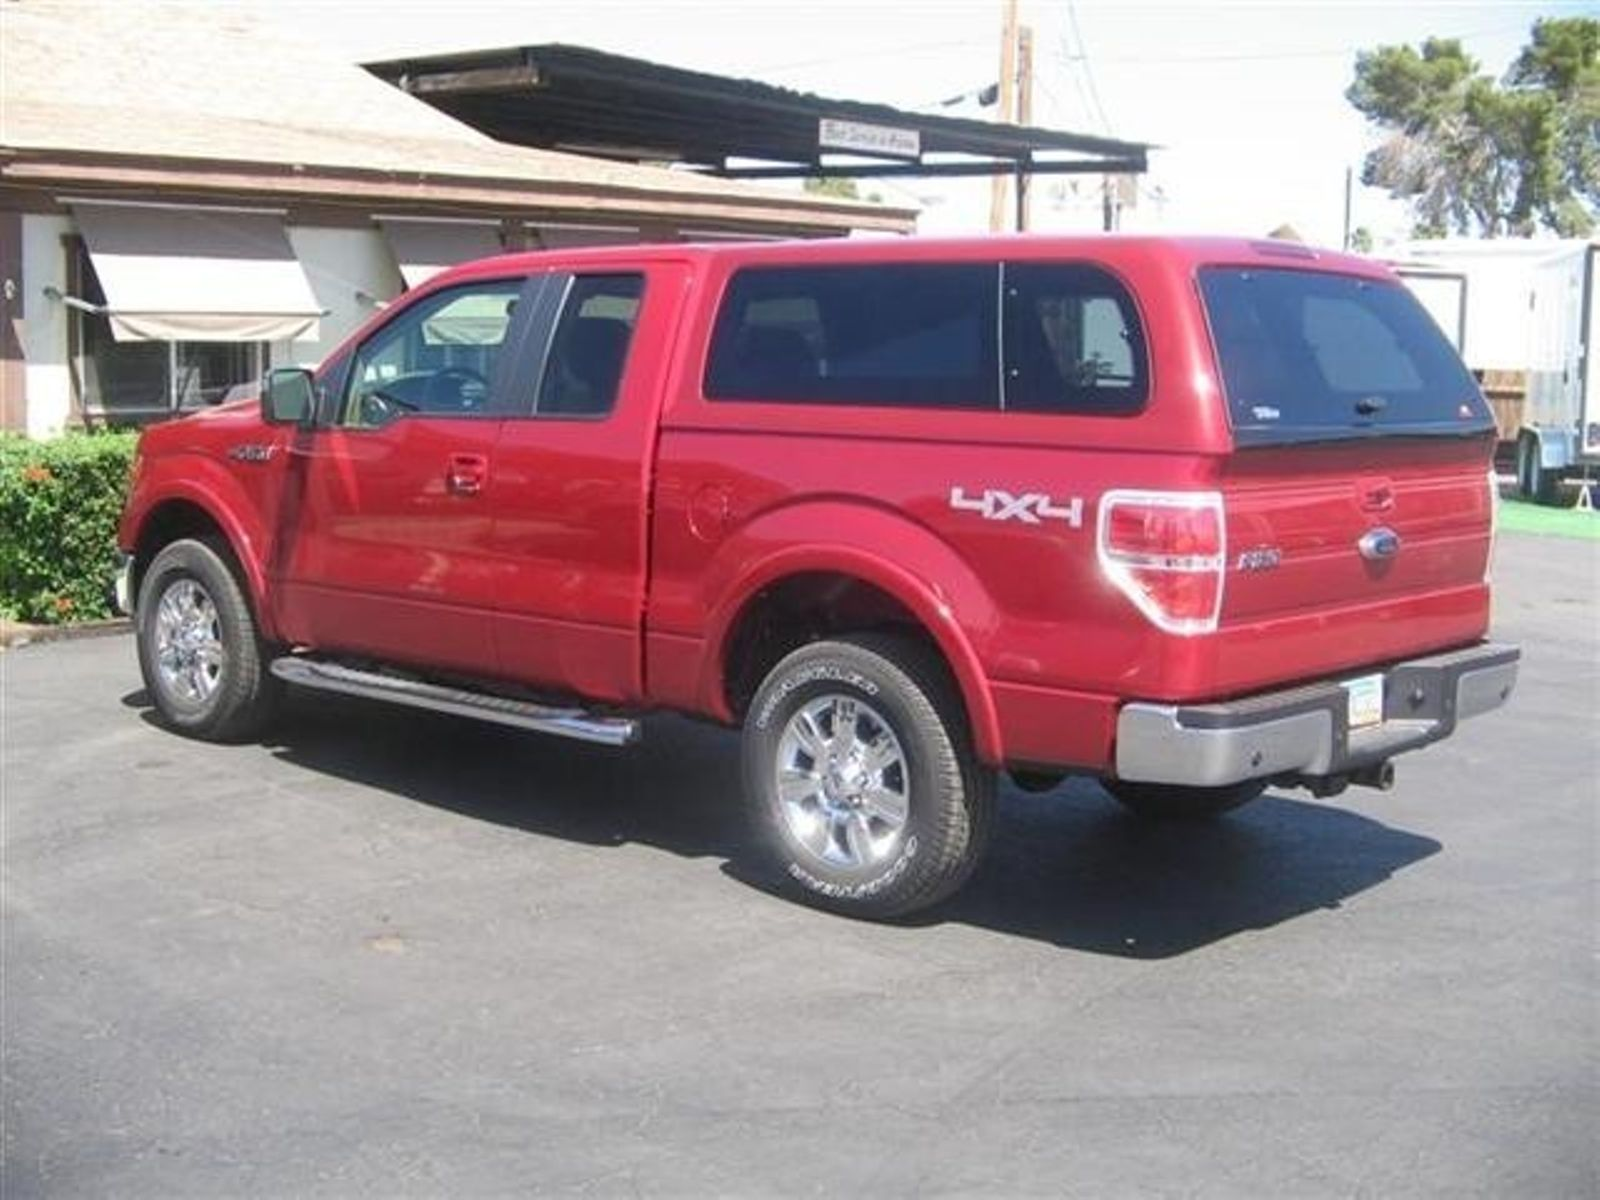 Certified Pre Owned Chevy >> 2017 Ford Chevy Dodge Camper Shells Truck Toppers Truck Caps | Phoenix AZ 85019